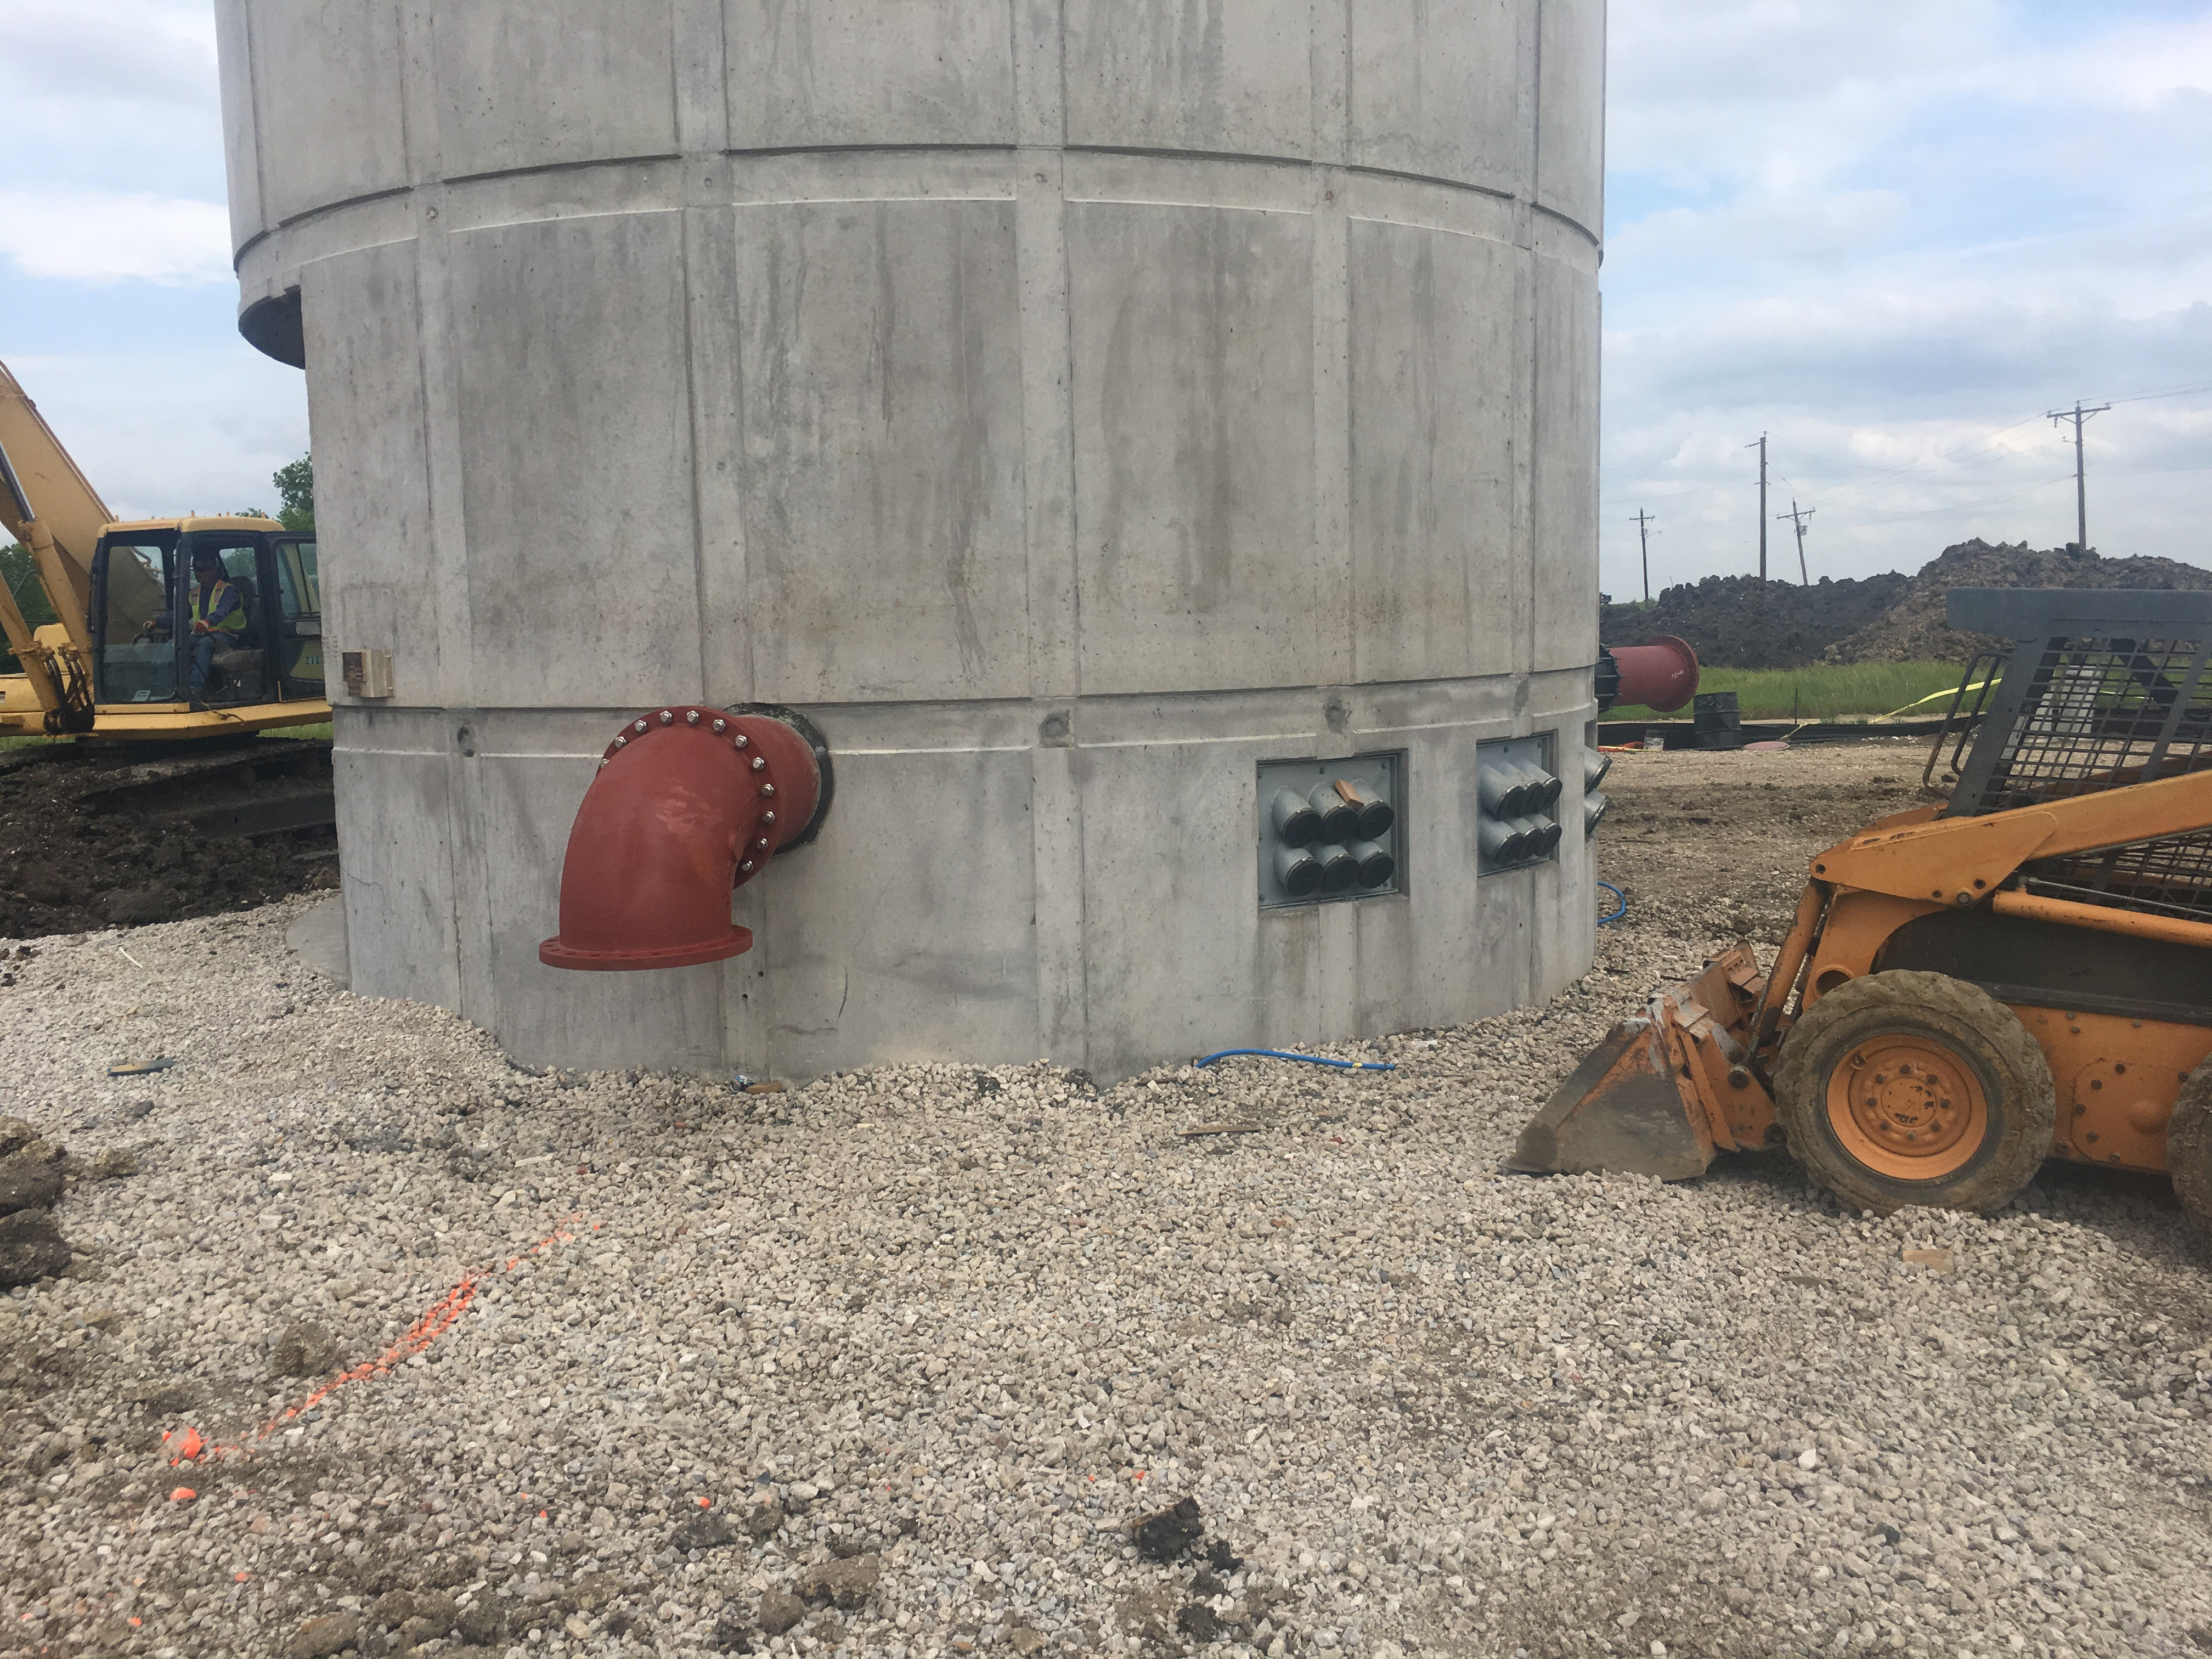 Dallas Pleasant Run Road Elevated Tower and Ground Storage Tank 2017